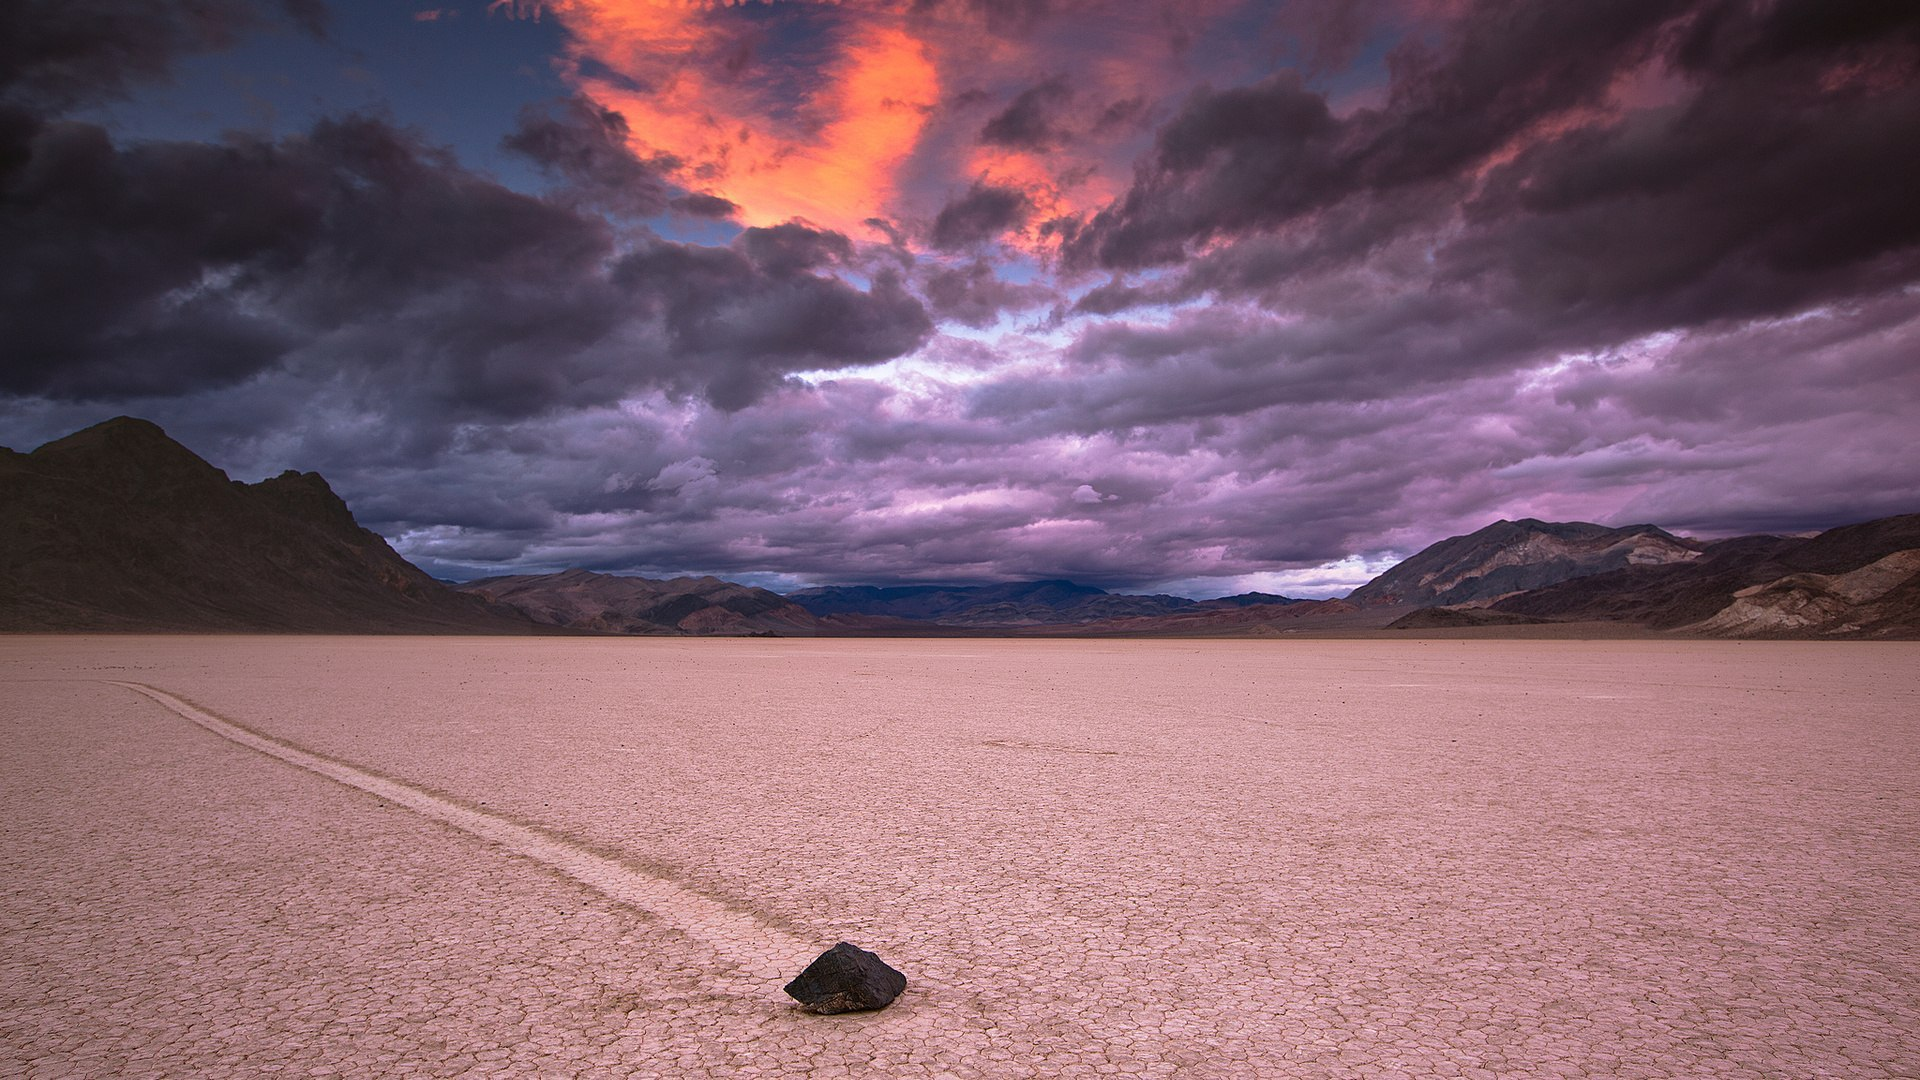 usa death valley hd wallpapers for desktop   HD Wallpaper 1920x1080